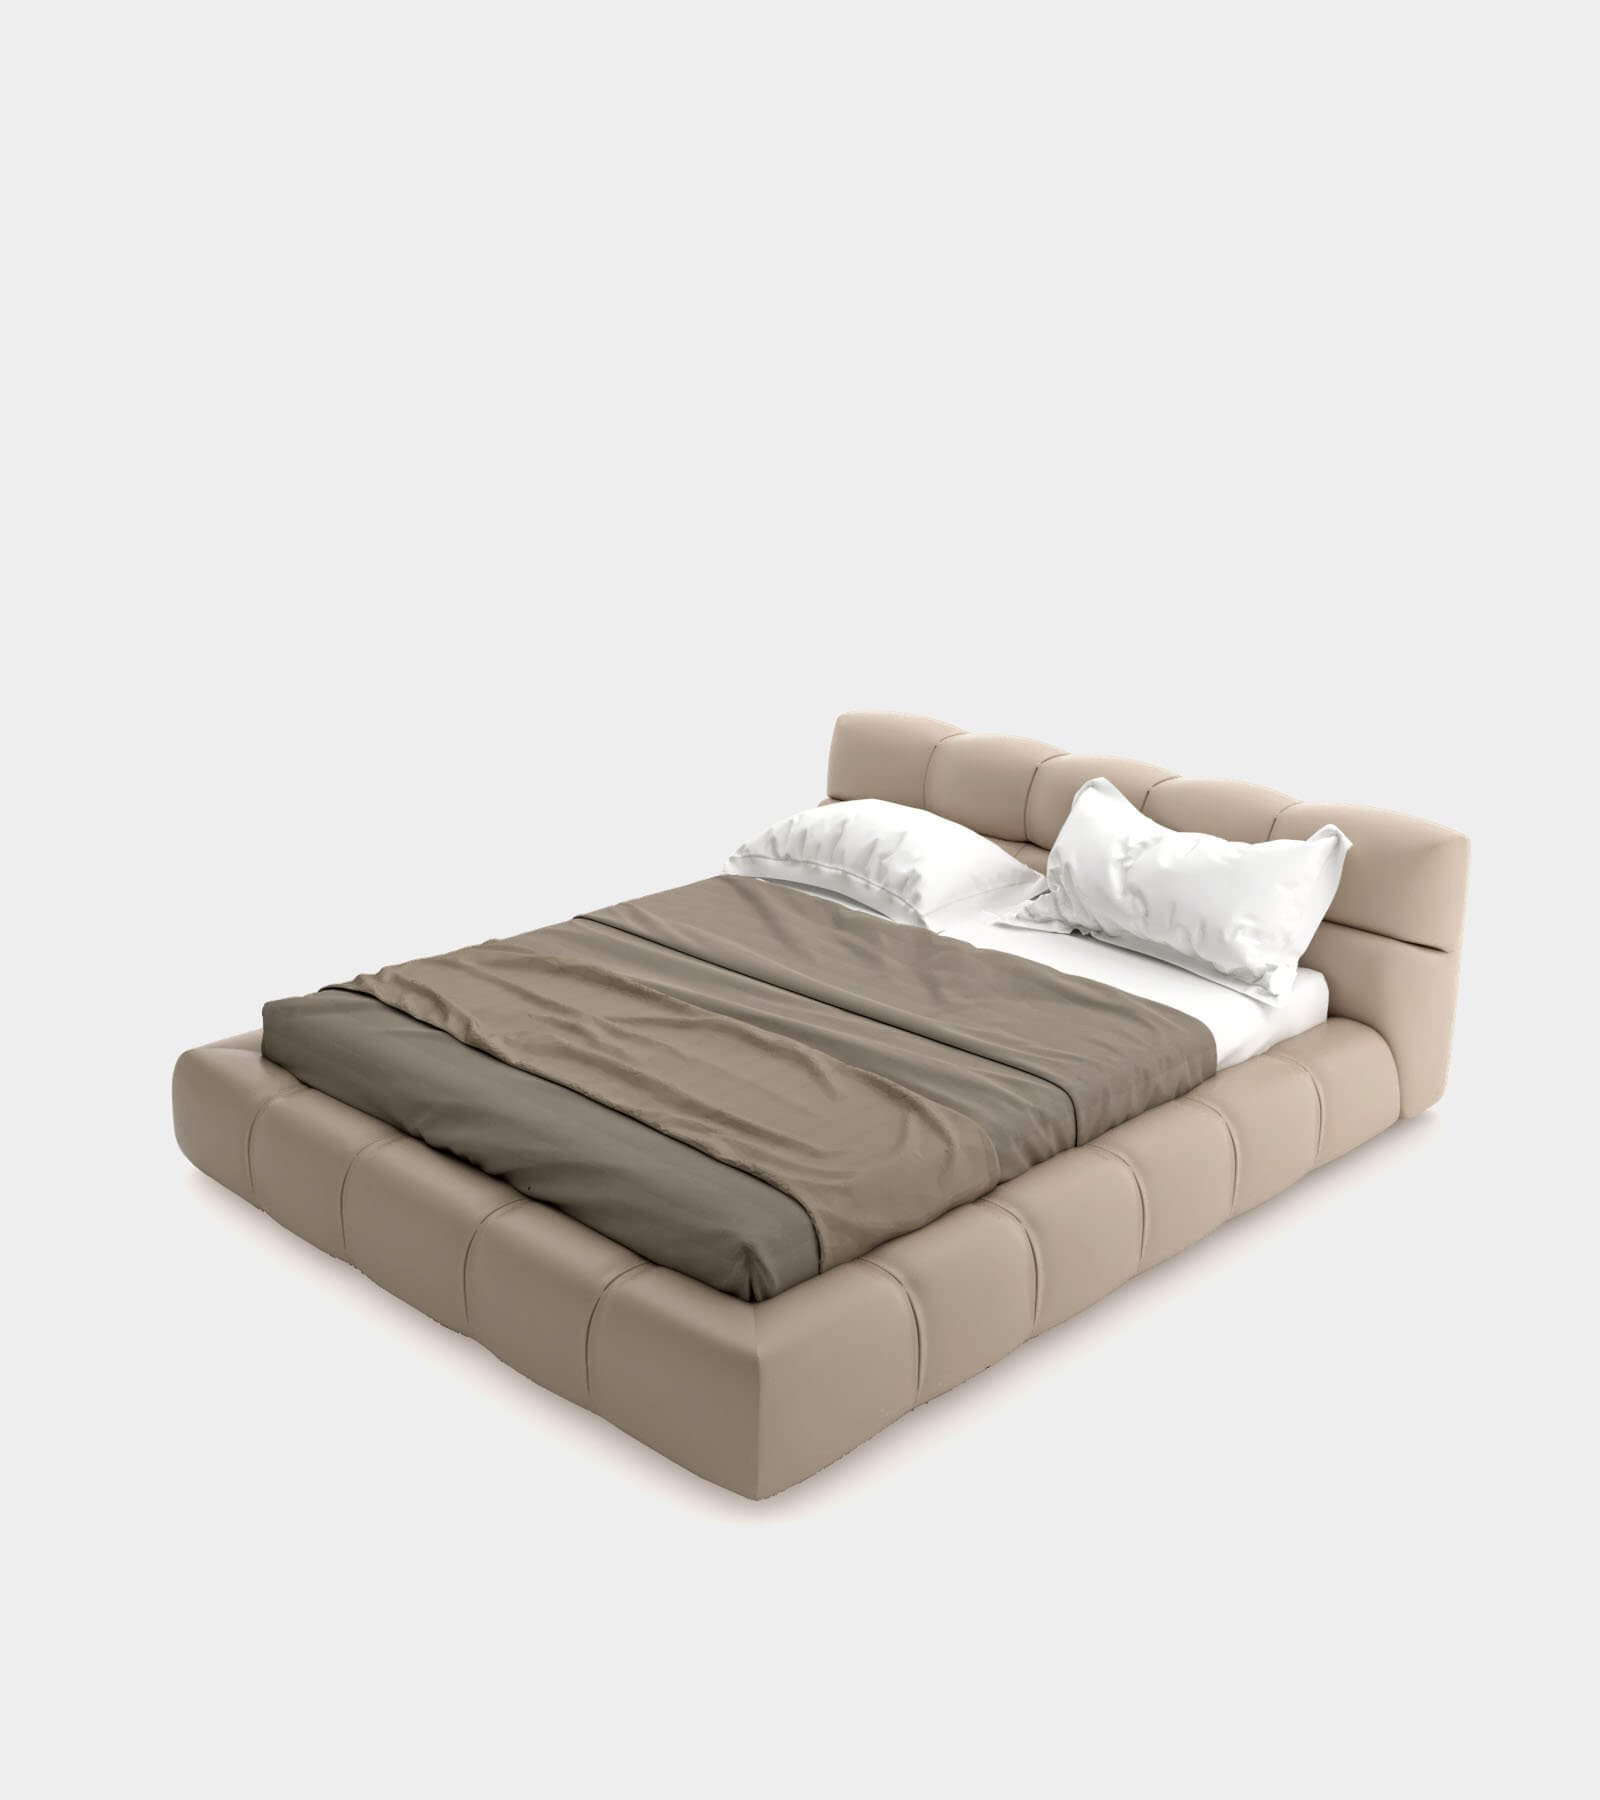 Modern leather bed 2- 3D Model